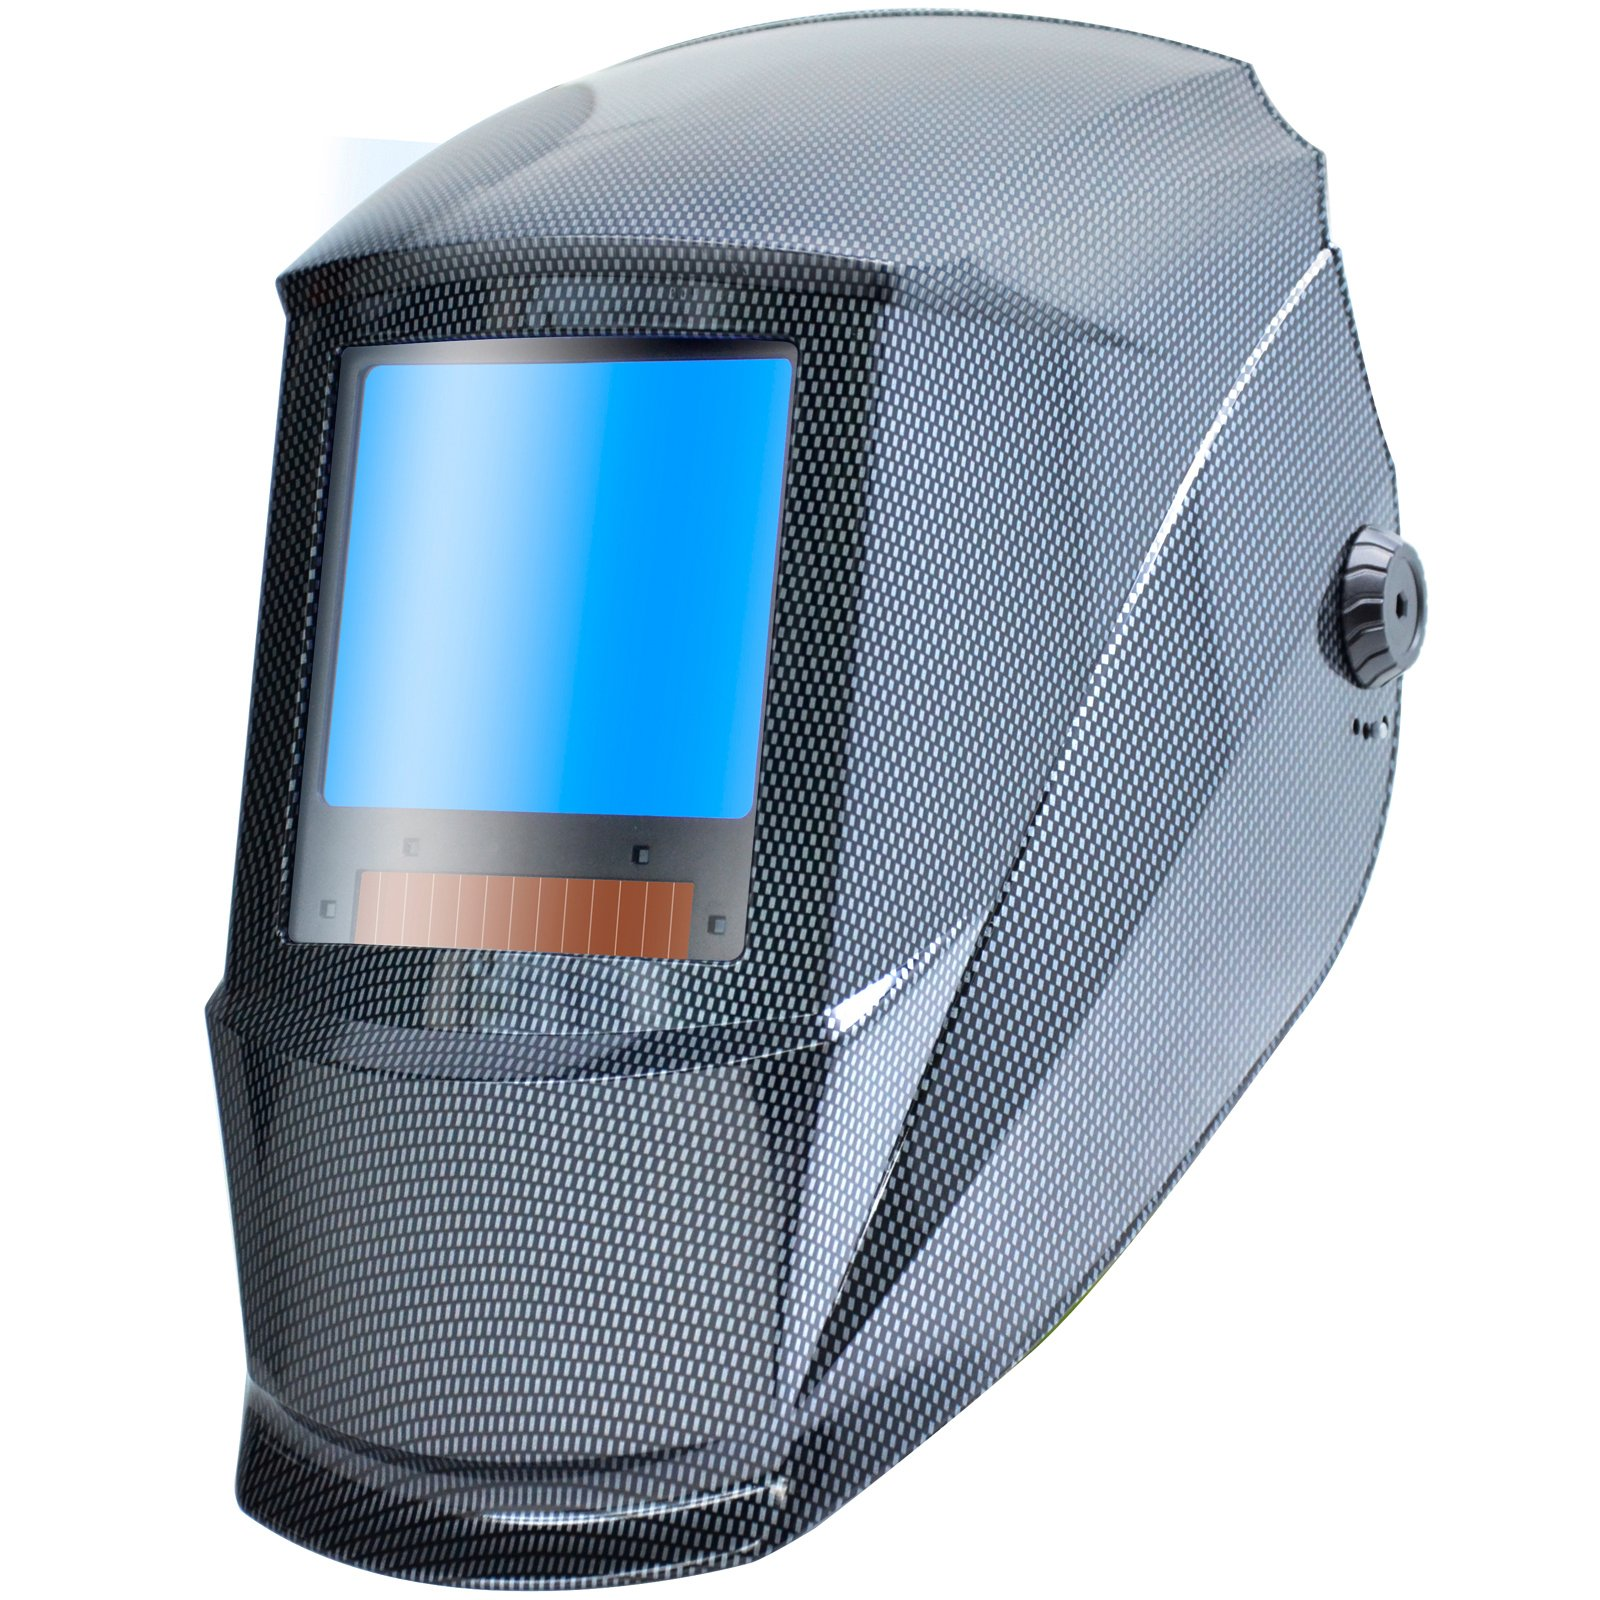 Antra AH7-X30P-001X   Digital Controlled Solar Powered Auto Darkening Welding Helmet Wide Shade 4/5-8/9-13 With Grinding Feature Extra Lens Covers Great for TIG, MIG, MMA, Plasma